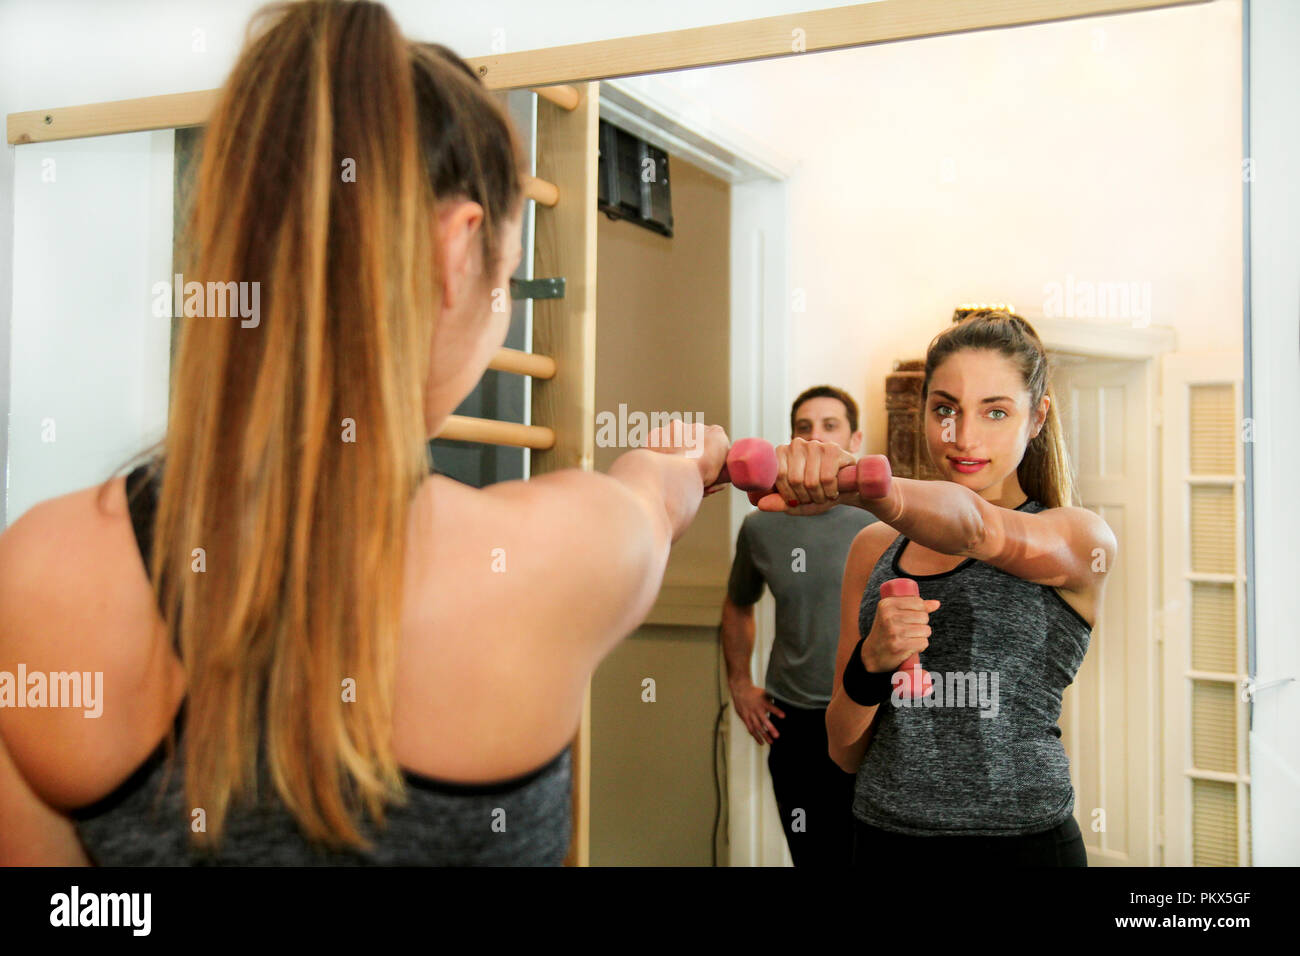 Sports woman exercise with lifting weights at fitness center. Good looking young girl doing boxing kick directly in gym. Sport, fitness, healthy. - Stock Image